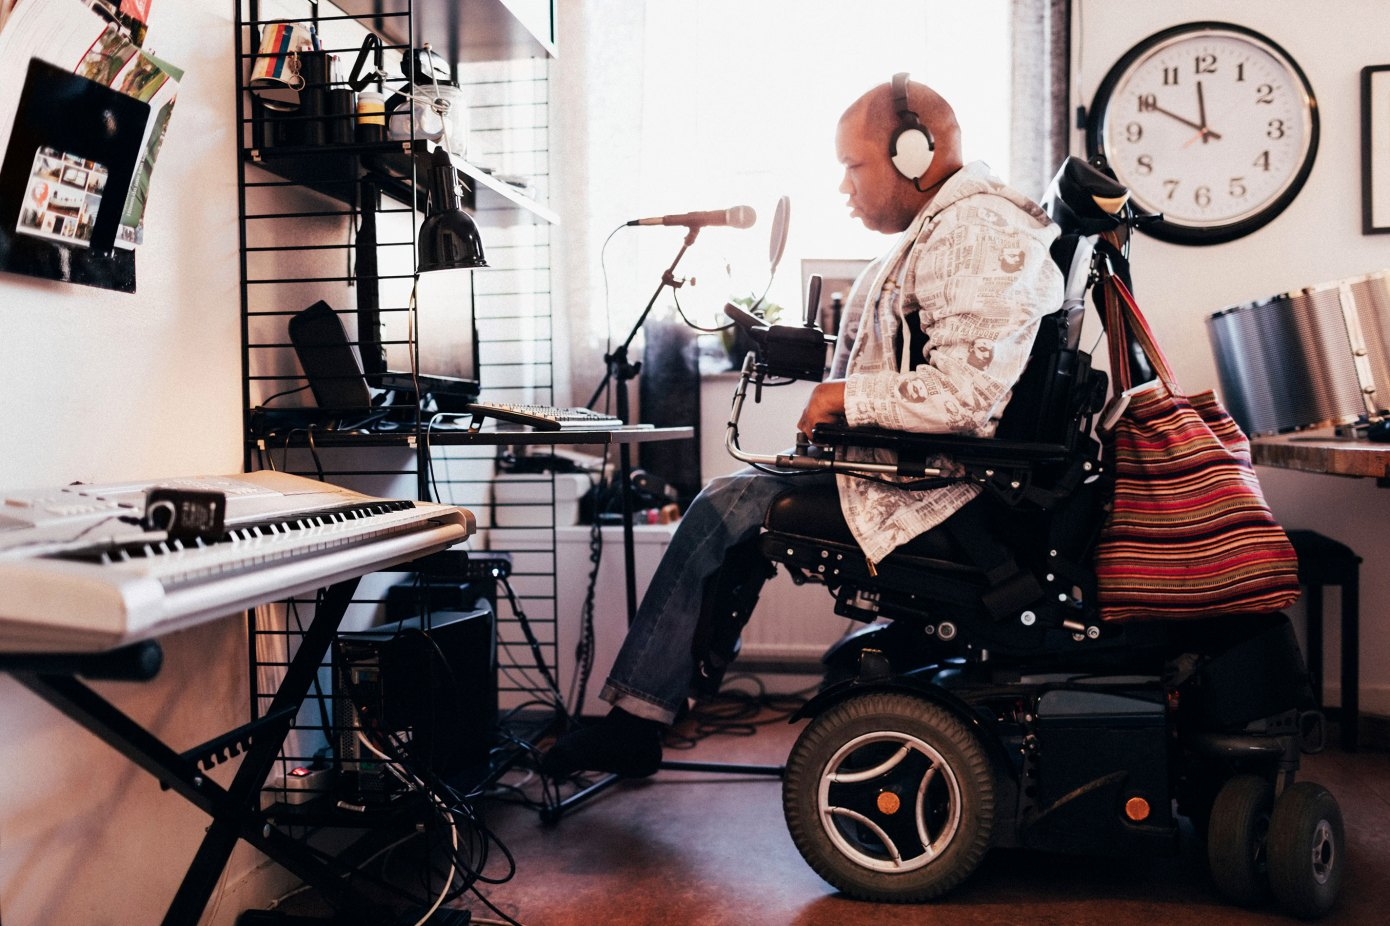 Microsoft accessibility grants go out to companies aiming to improve tech for people with disabilities